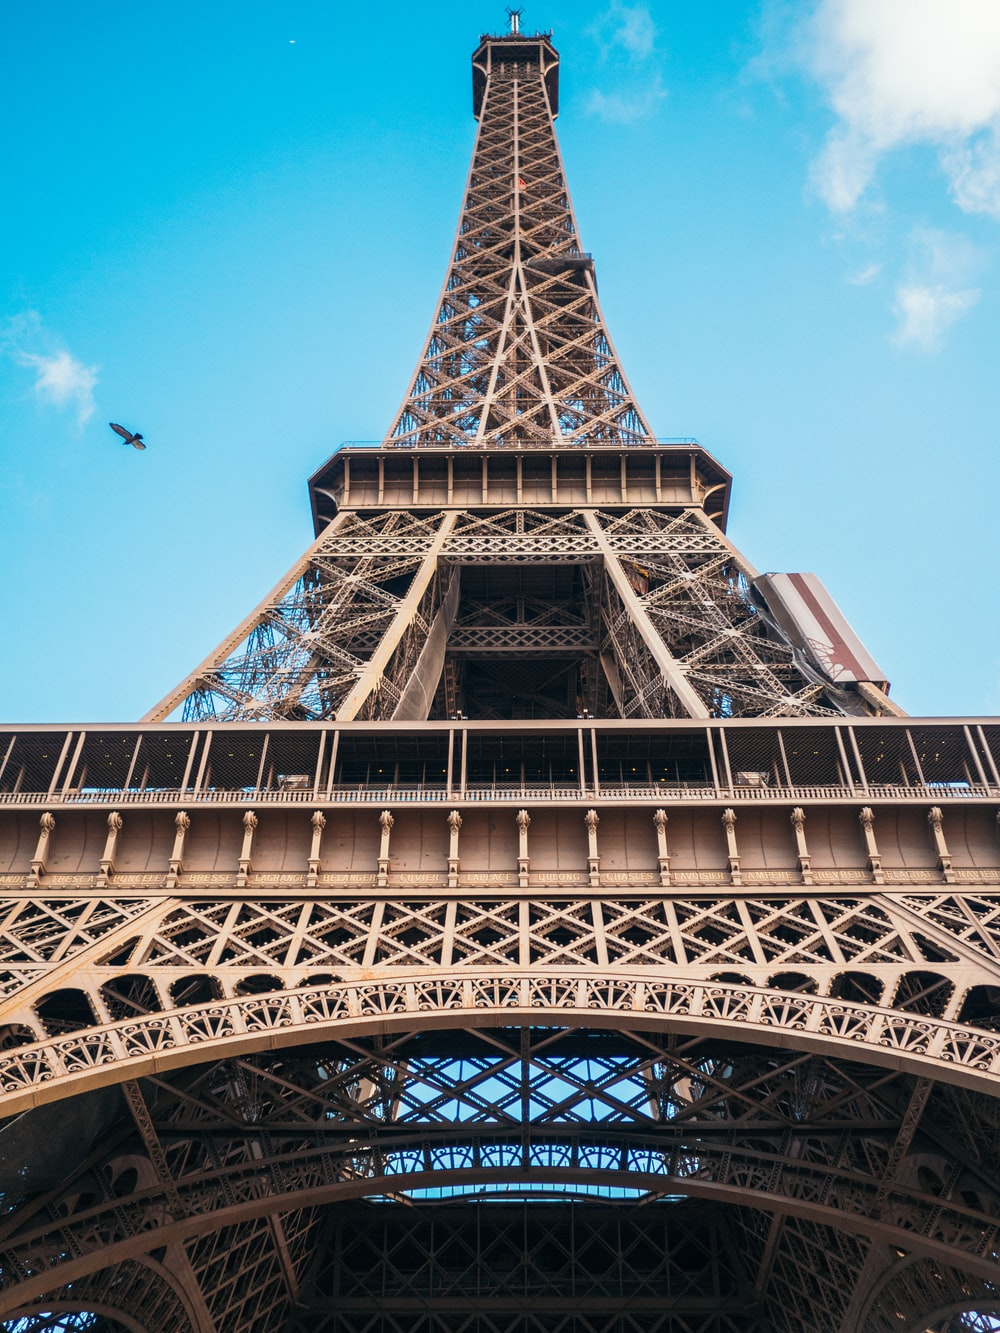 Tower, architecture, building and eiffel tower | HD photo by